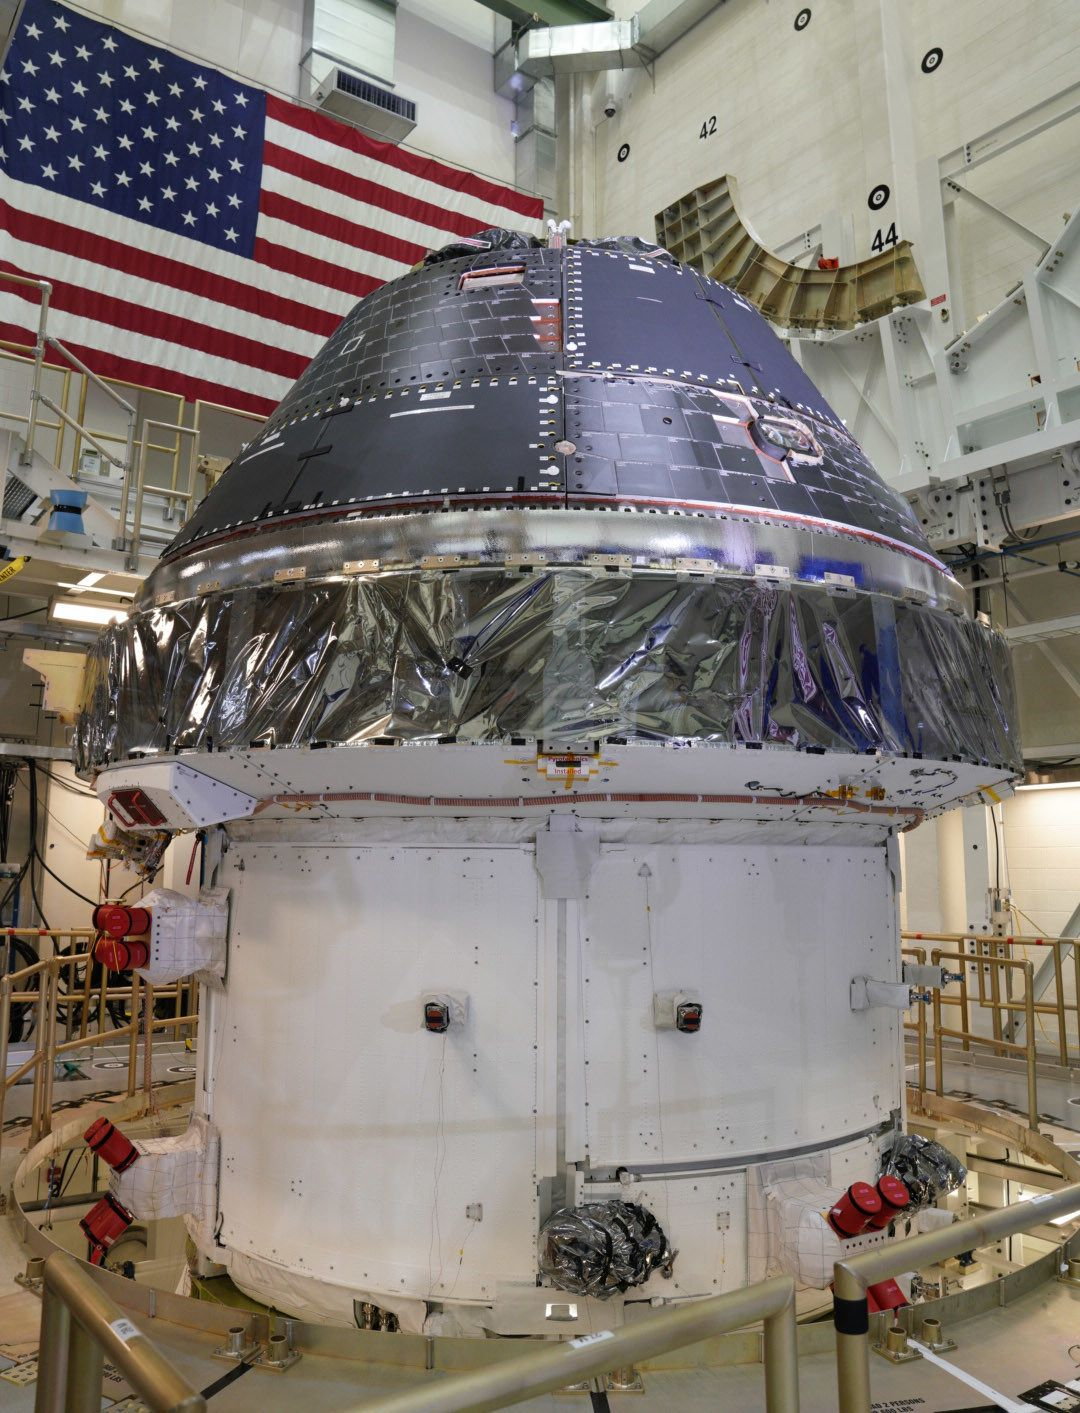 NASA Finally Completes the Orion Crew Capsule